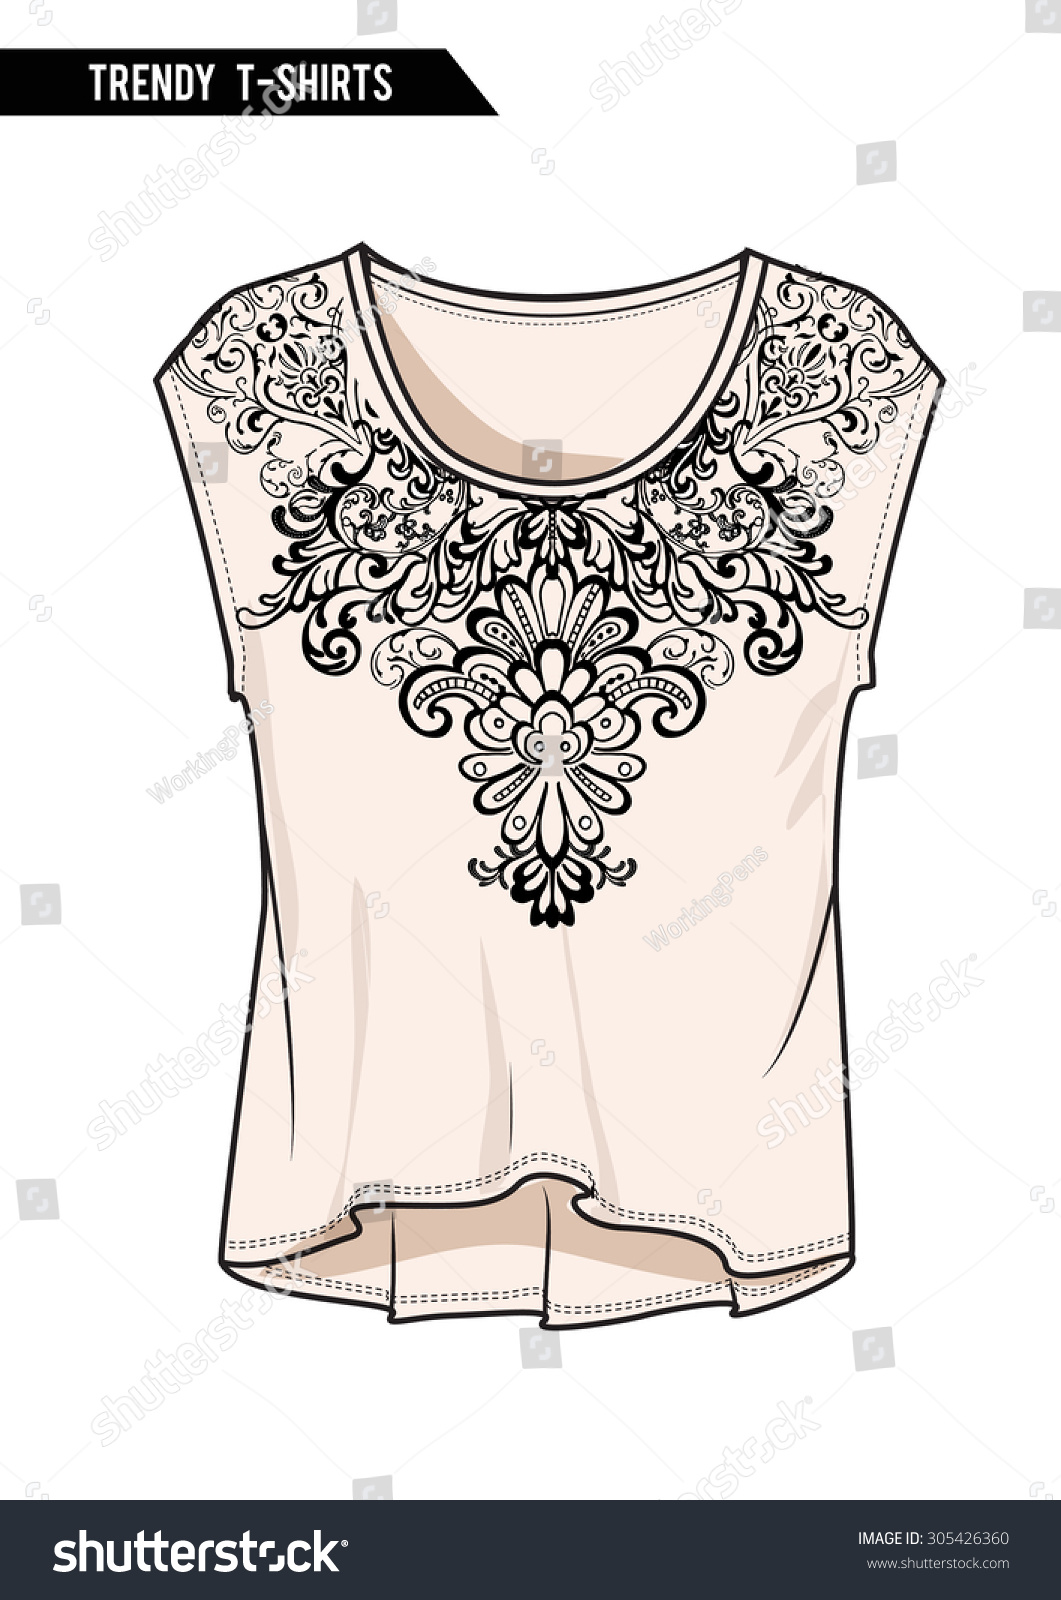 Neck print with trendy women top for fashion and other uses in vector